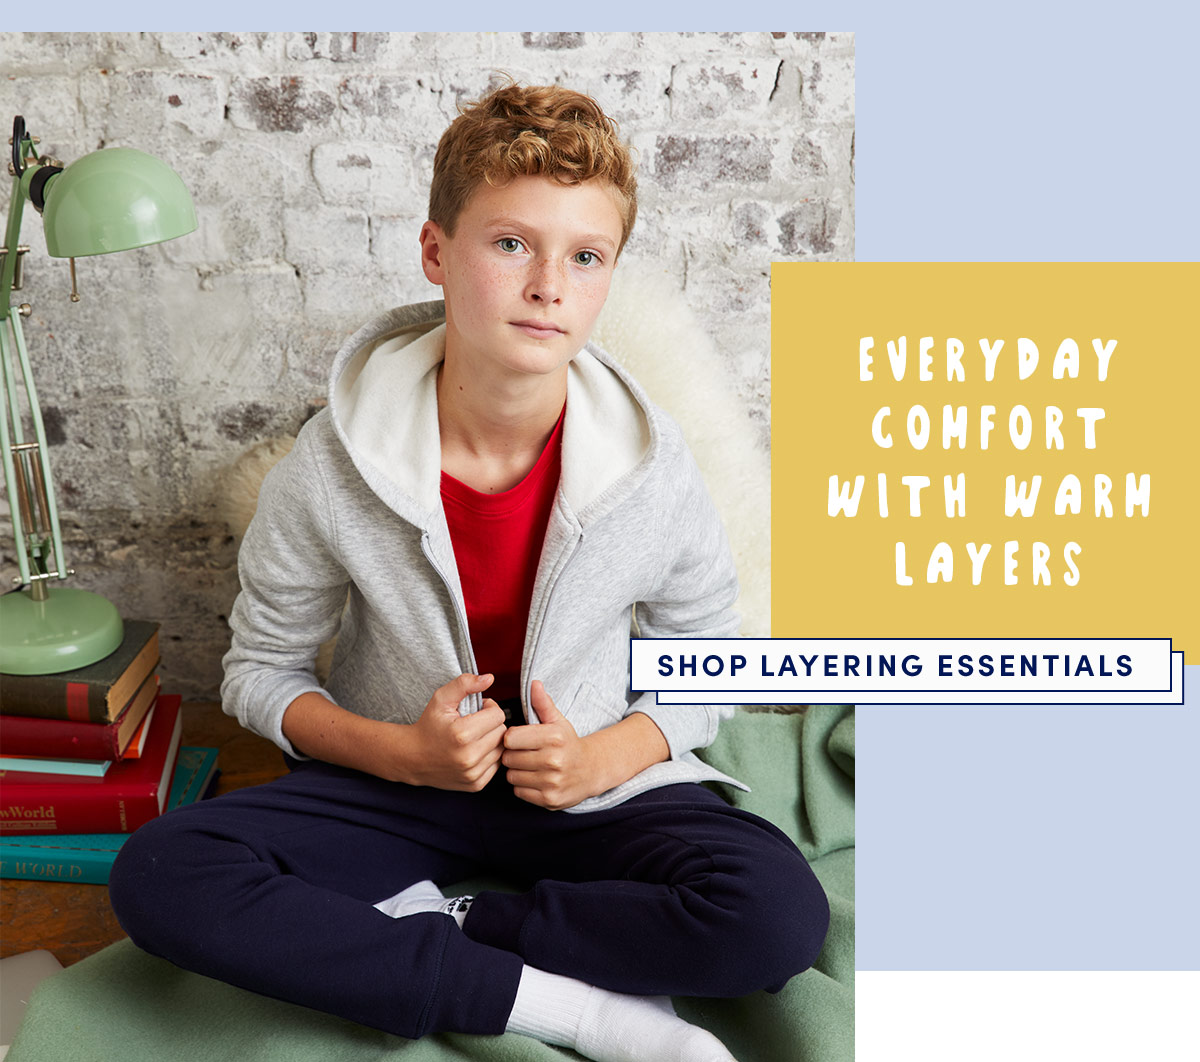 Shop Layering Essentials